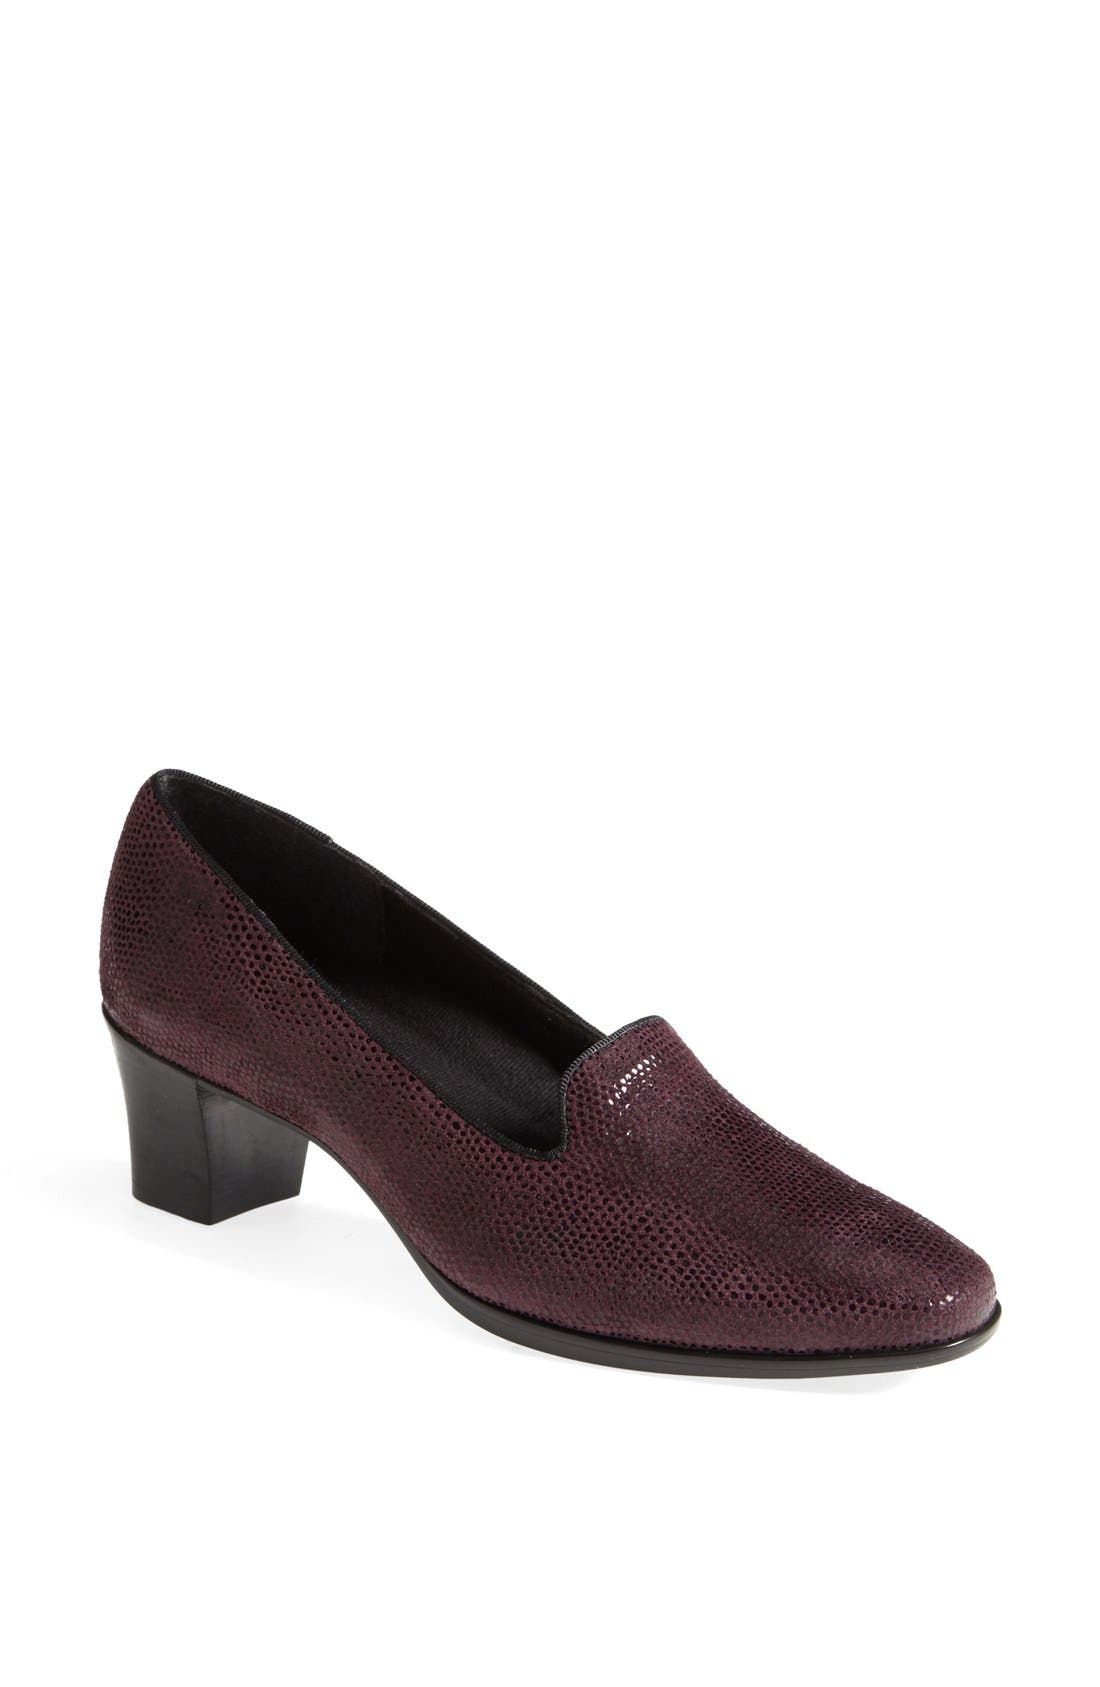 Alternate Image 1 Selected - Munro 'Layla' Pump (Women)